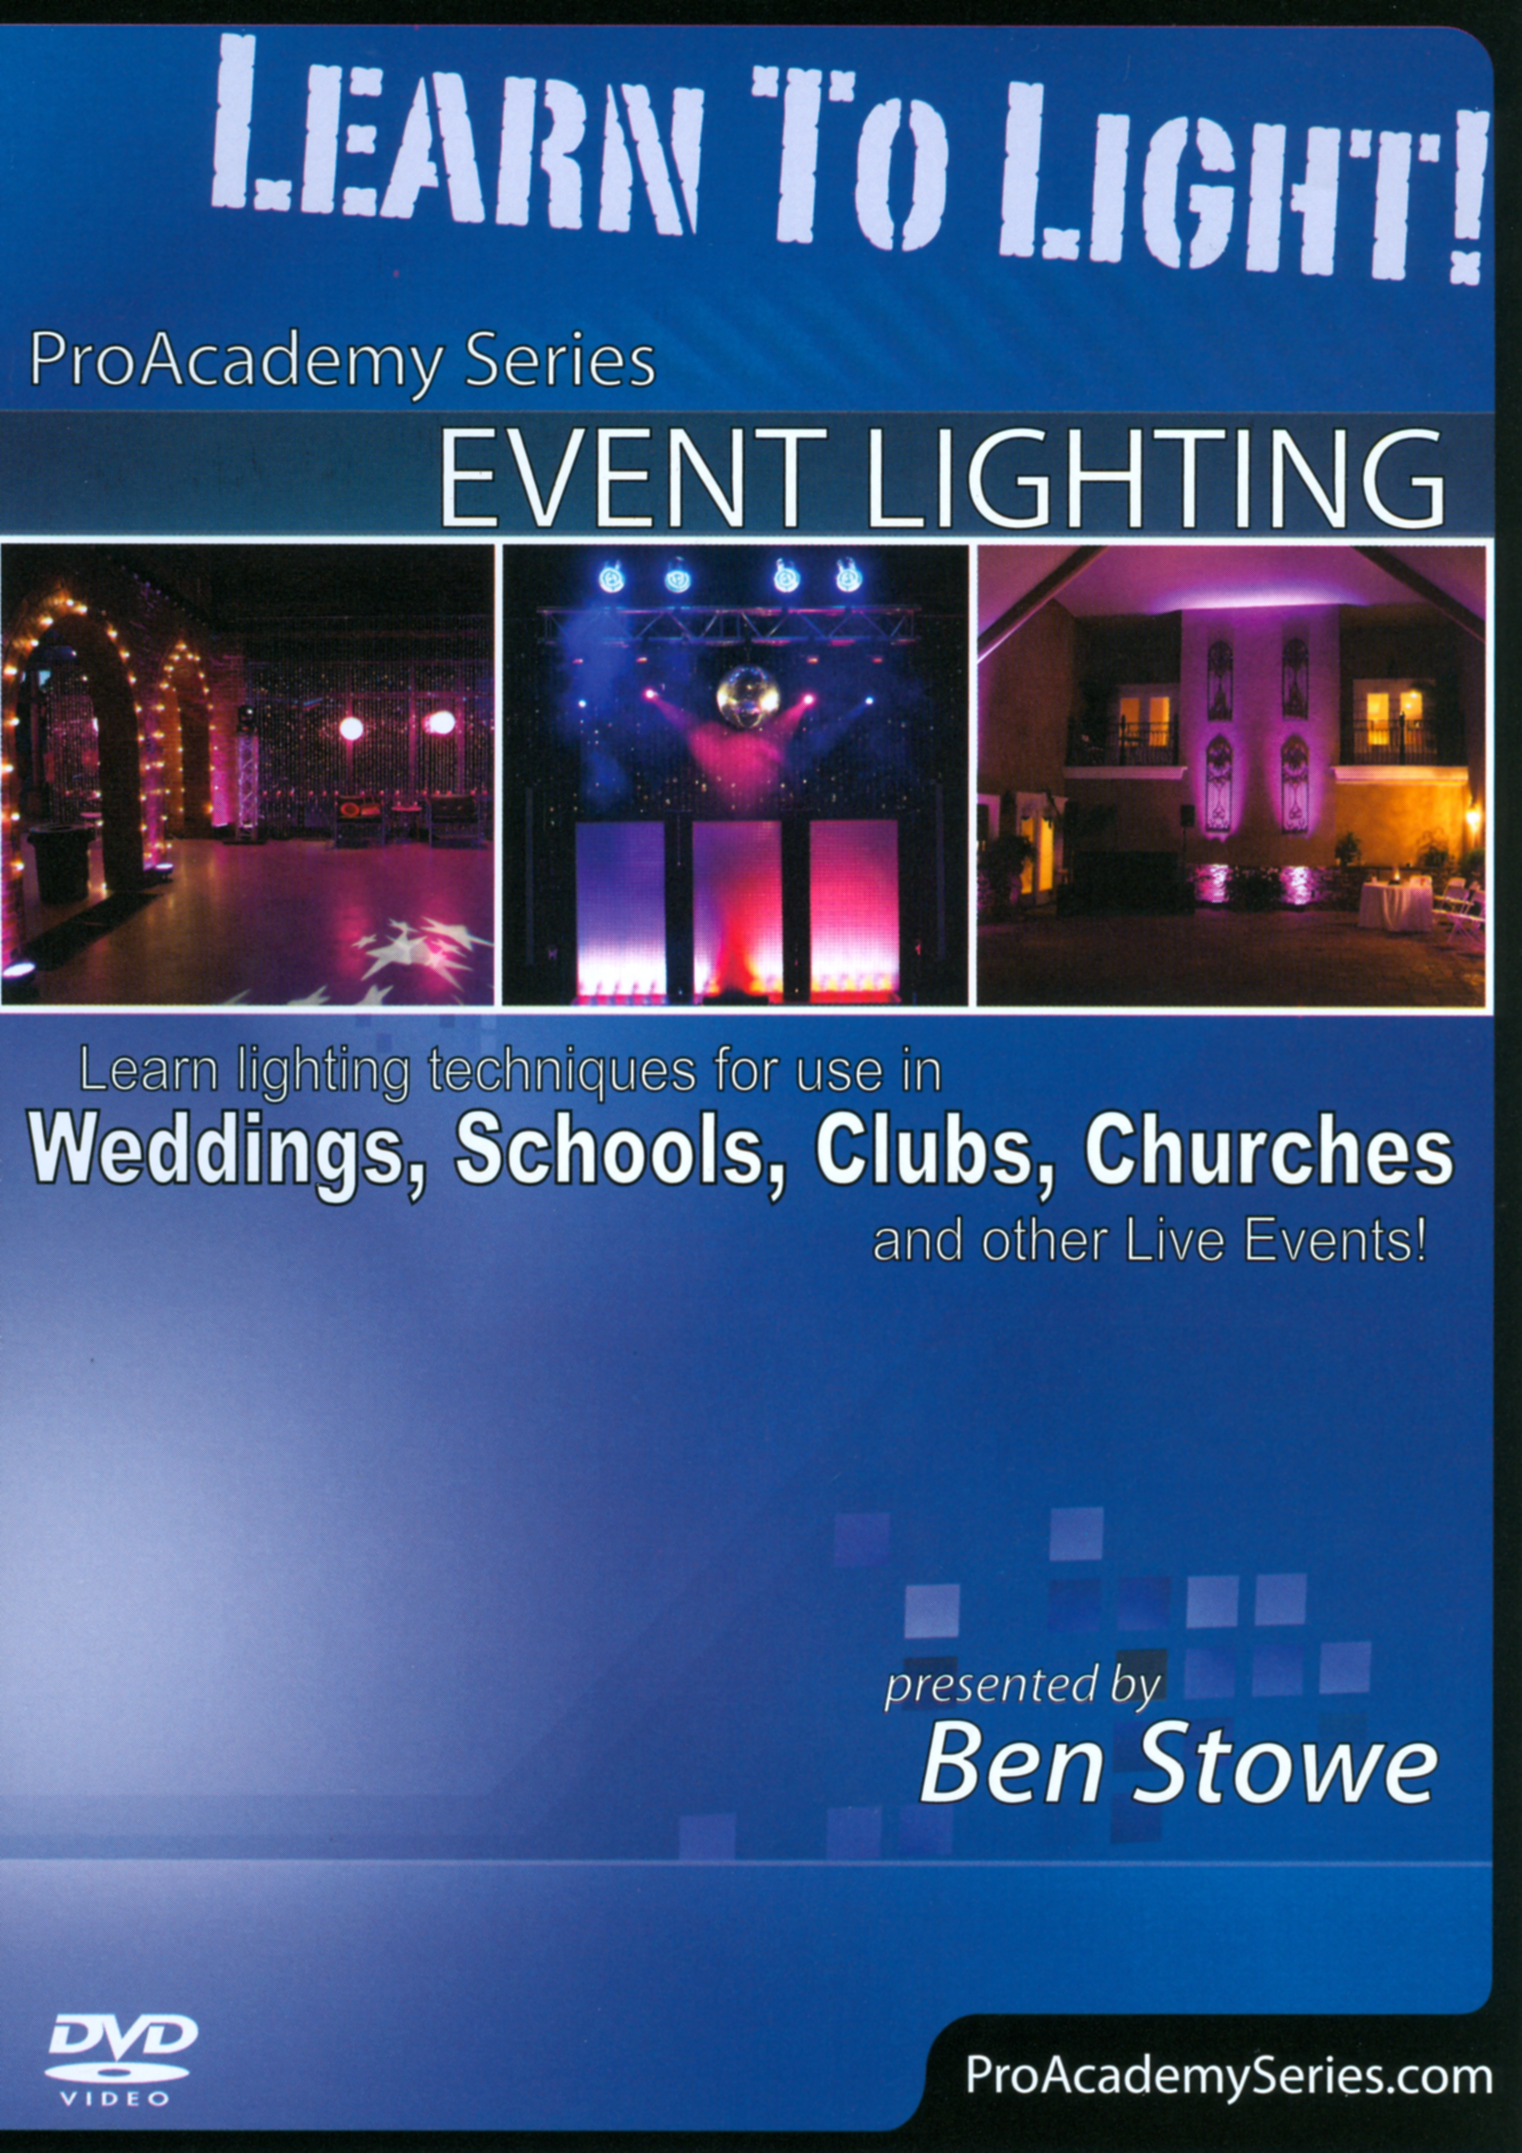 ProAcademy Series: Event Lighting